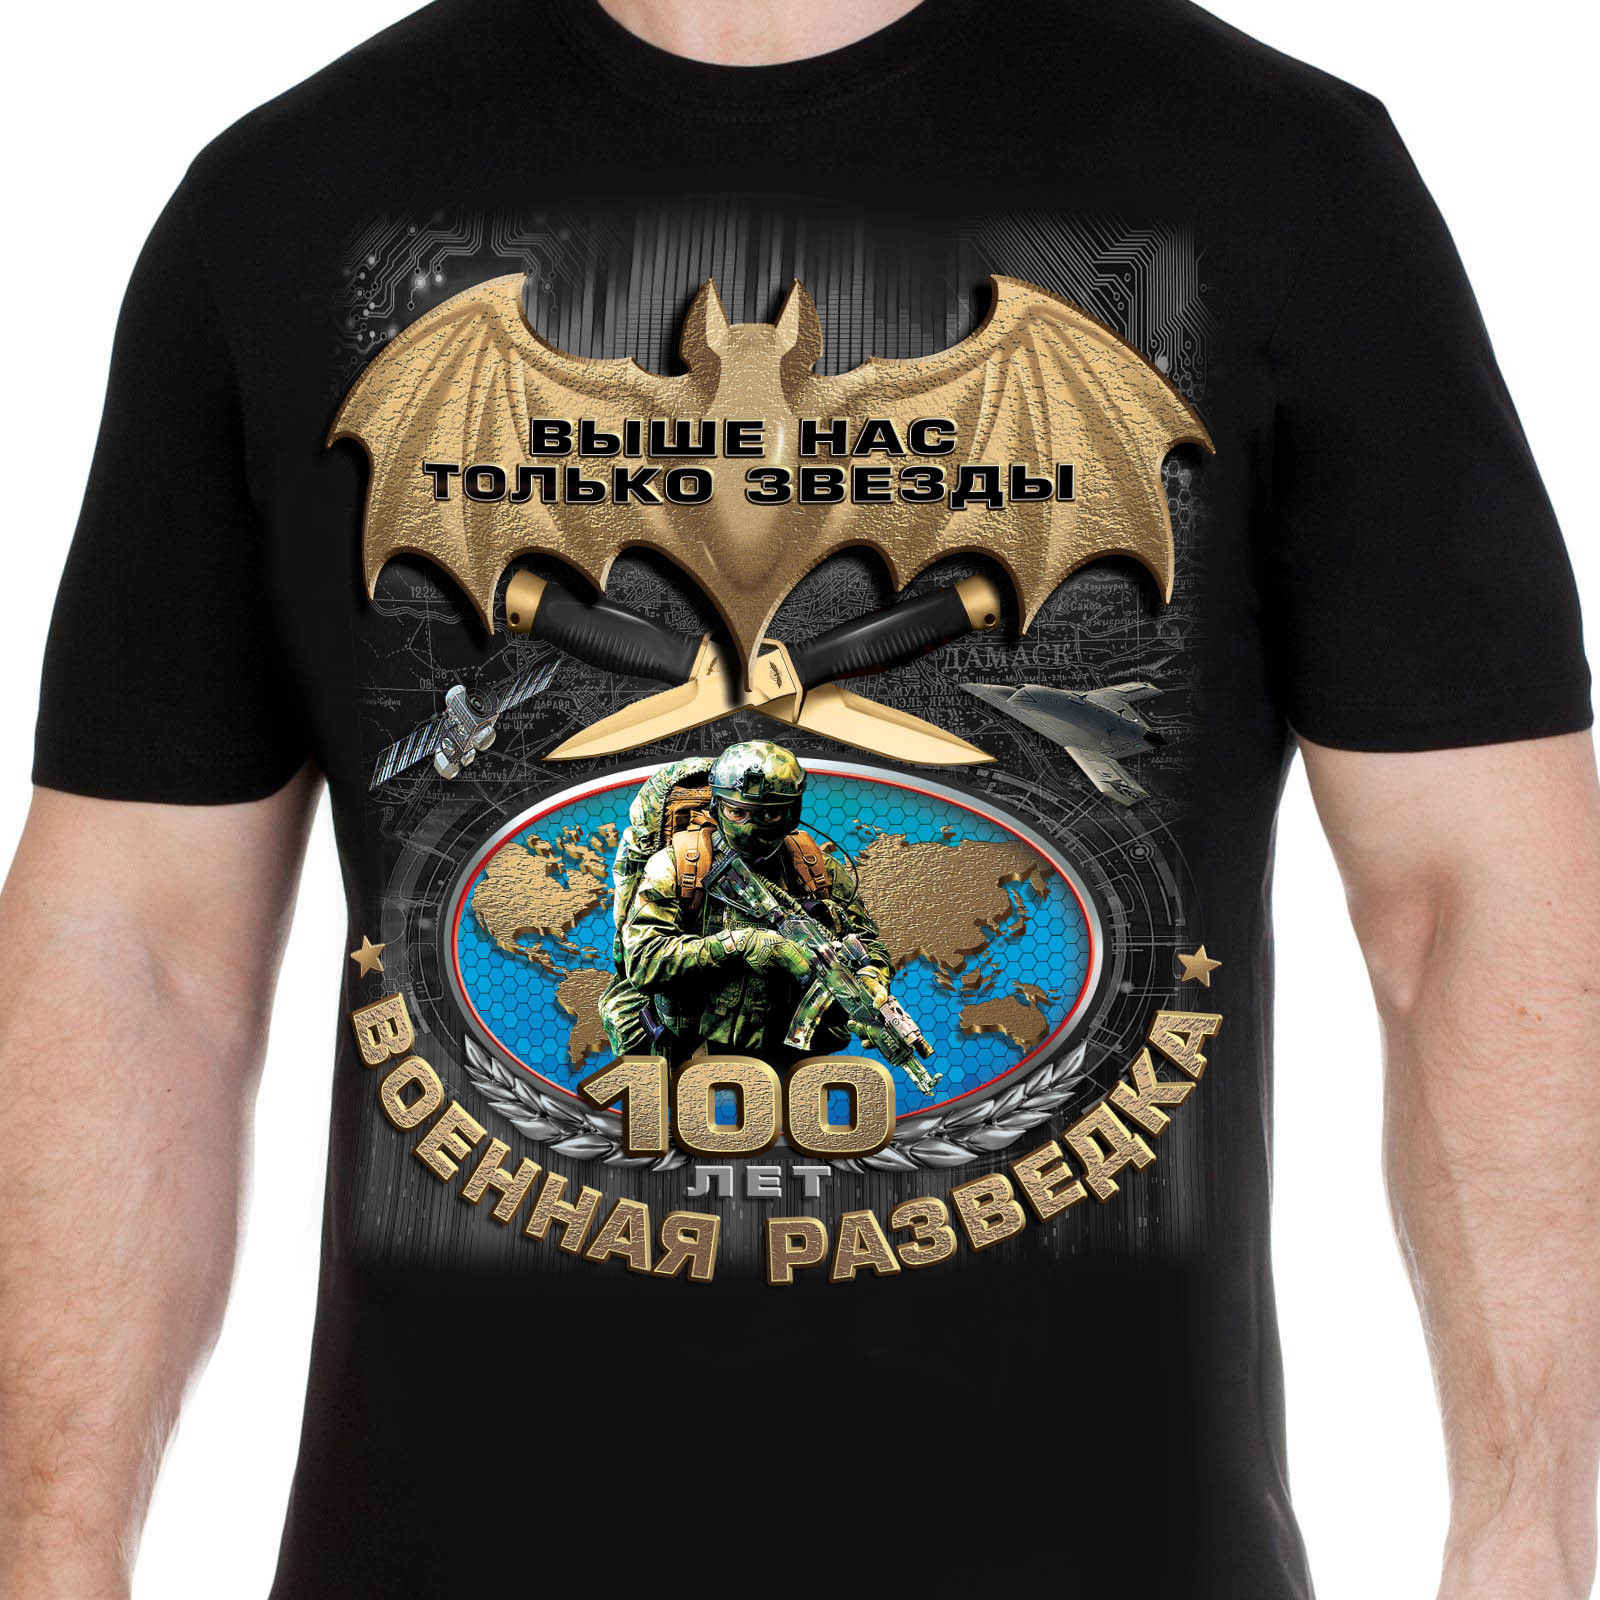 Men T-shirt military intellige in black 100% cotton.T-shirts includes front russian